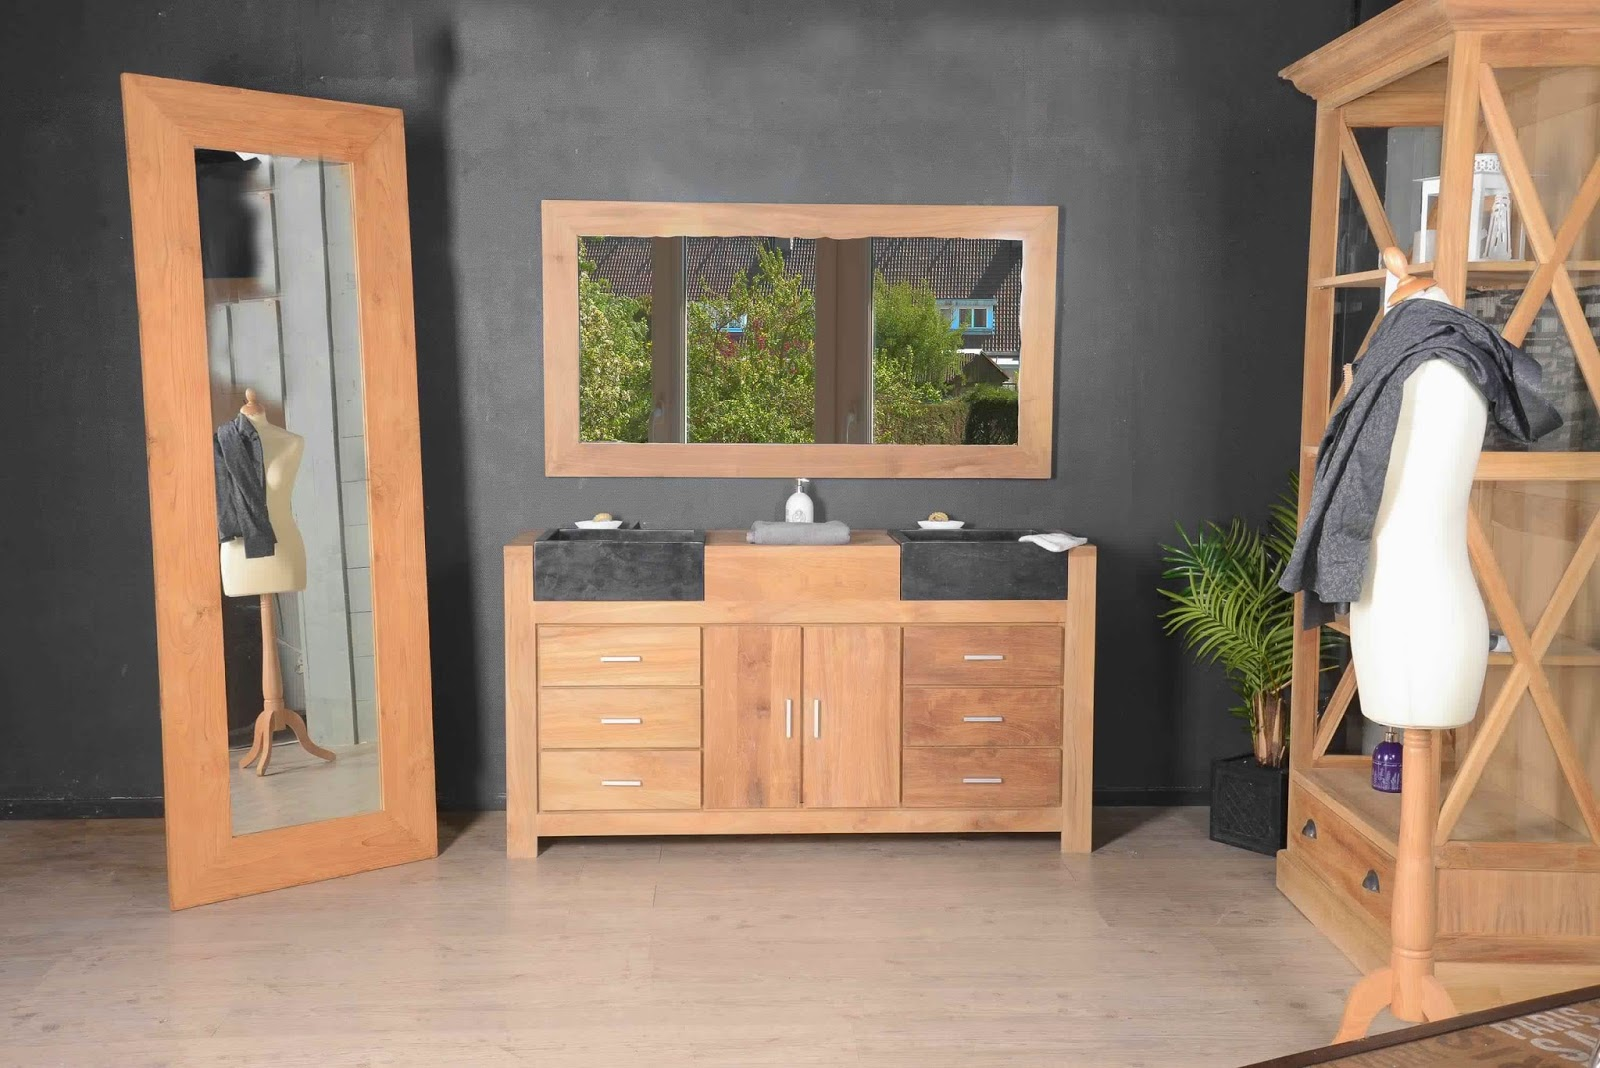 meuble salle de bain bois 2 vasques meuble d coration maison. Black Bedroom Furniture Sets. Home Design Ideas